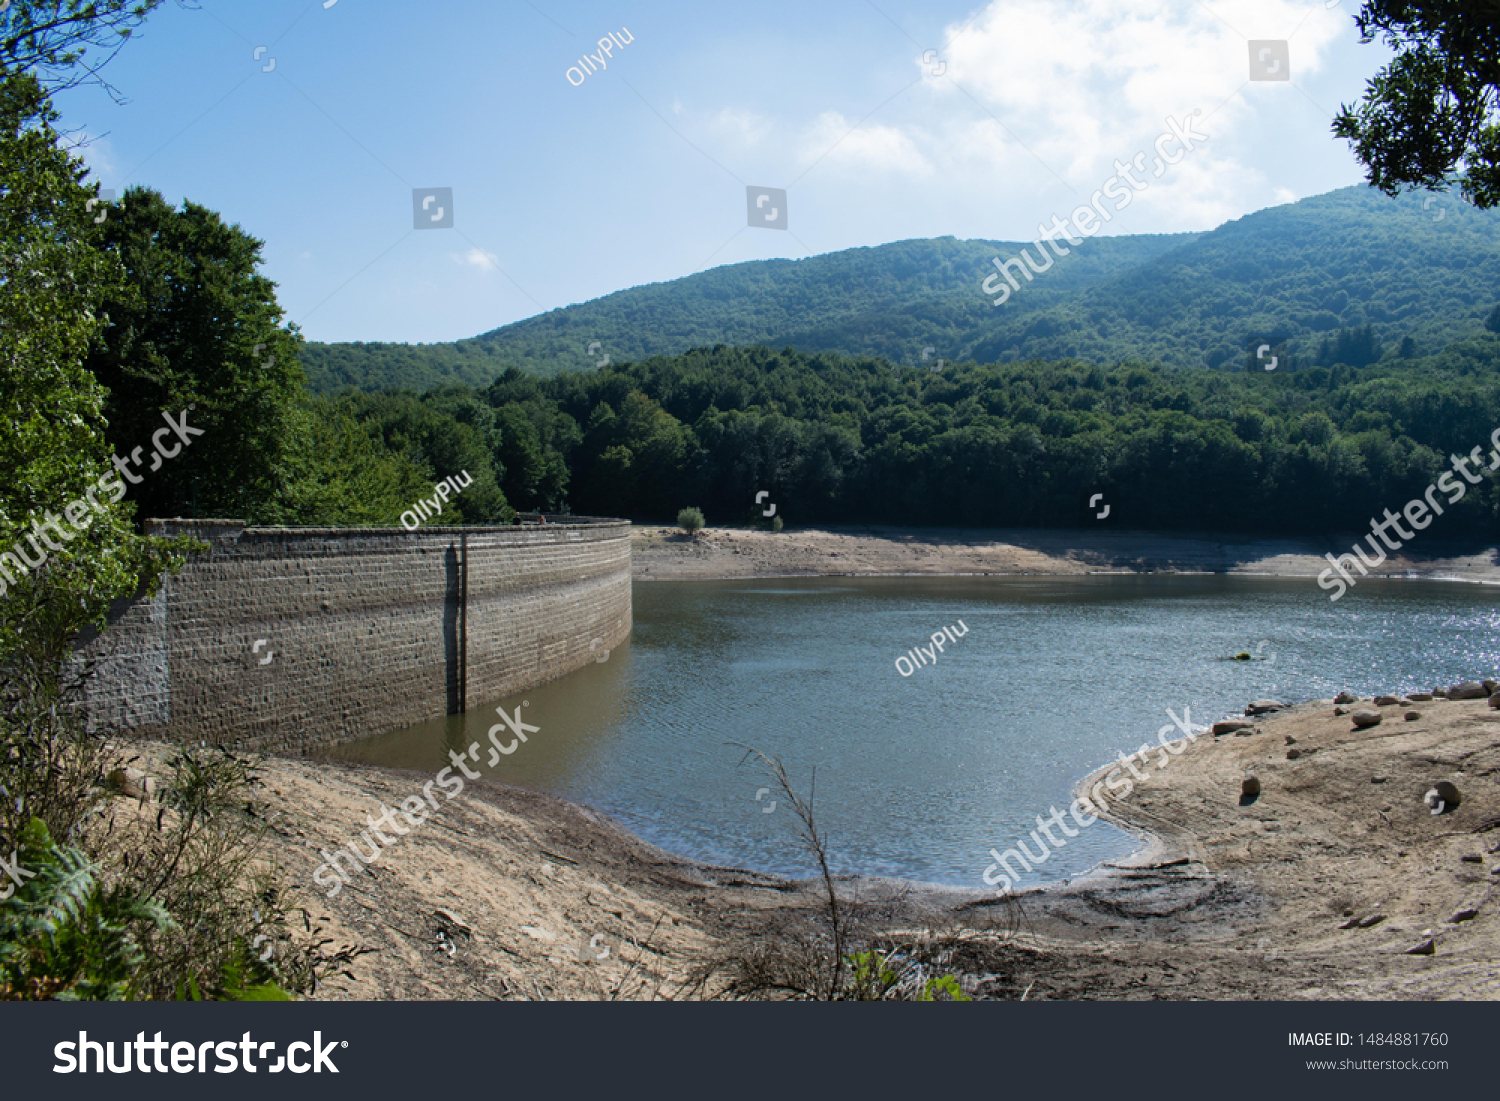 Dried Santa Fe Dam Reservoir Montseny Parks Outdoor Stock Image 1484881760